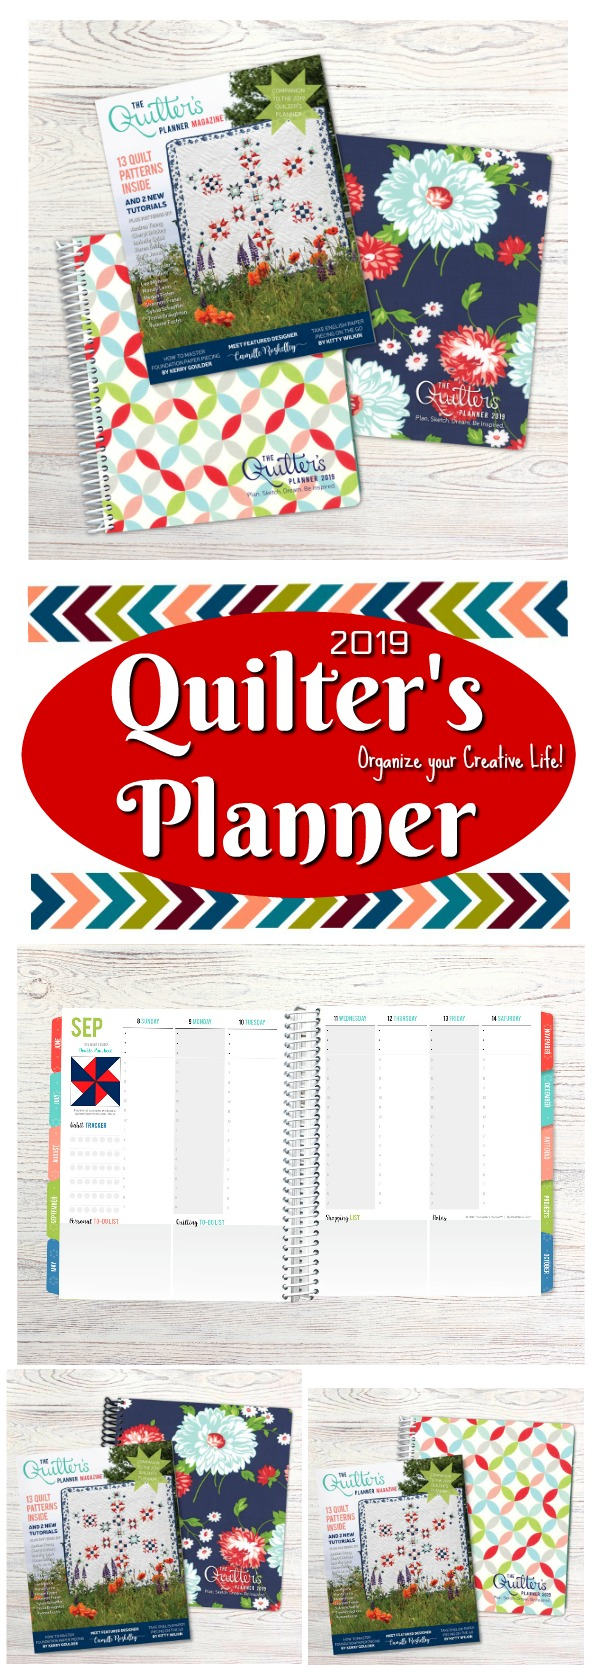 2019 Quilter's Planner - Planning your creative life.